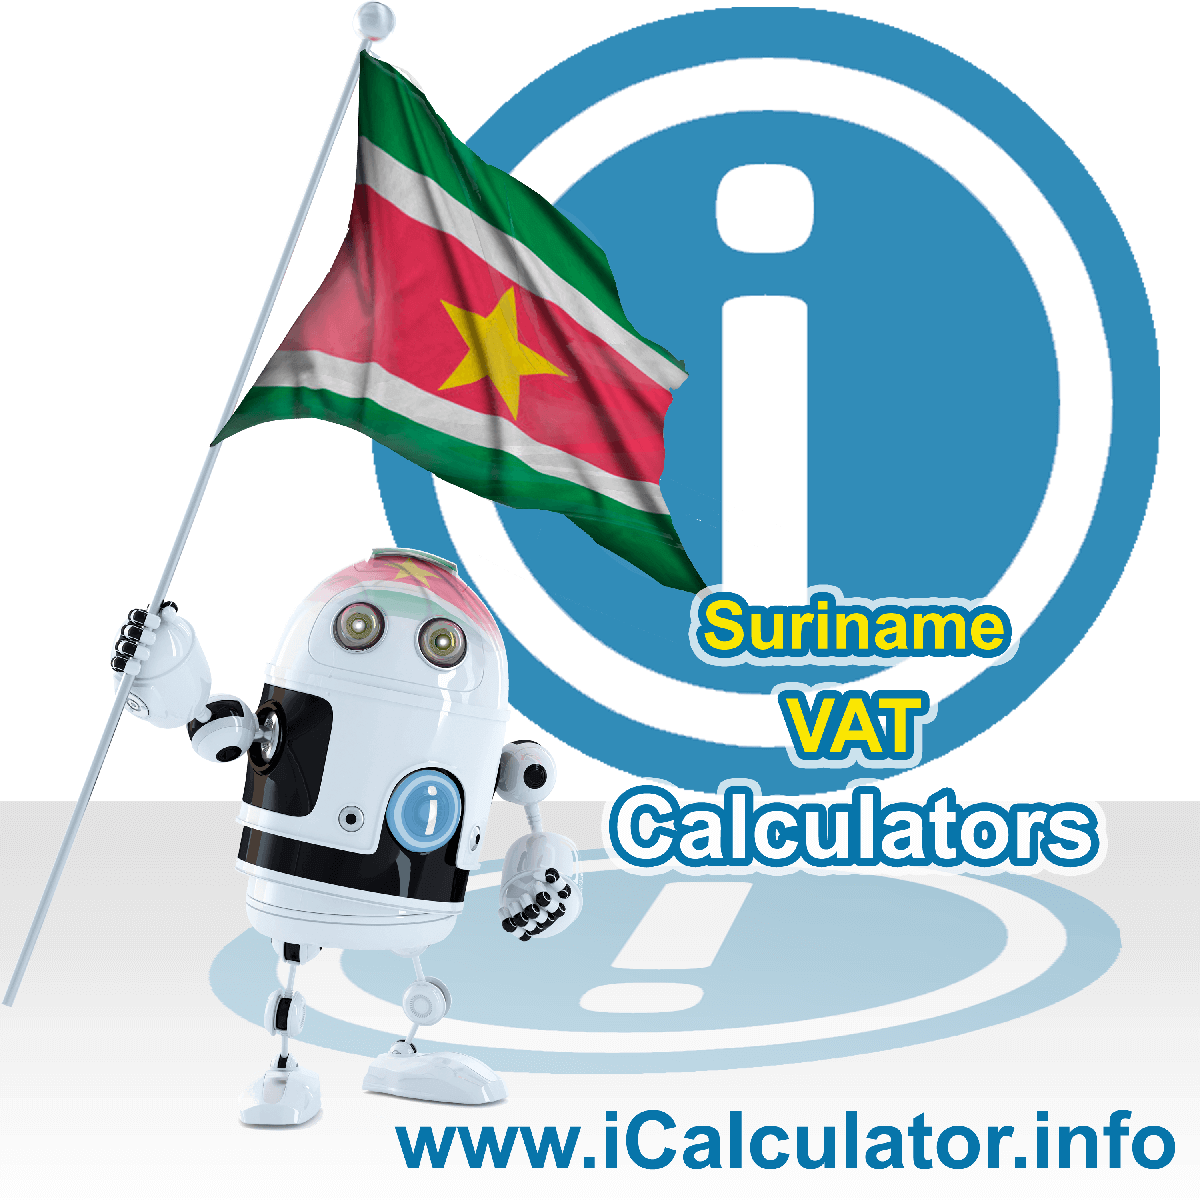 Suriname VAT Calculator. This image shows the Suriname flag and information relating to the VAT formula used for calculating Value Added Tax in Suriname using the Suriname VAT Calculator in 2020